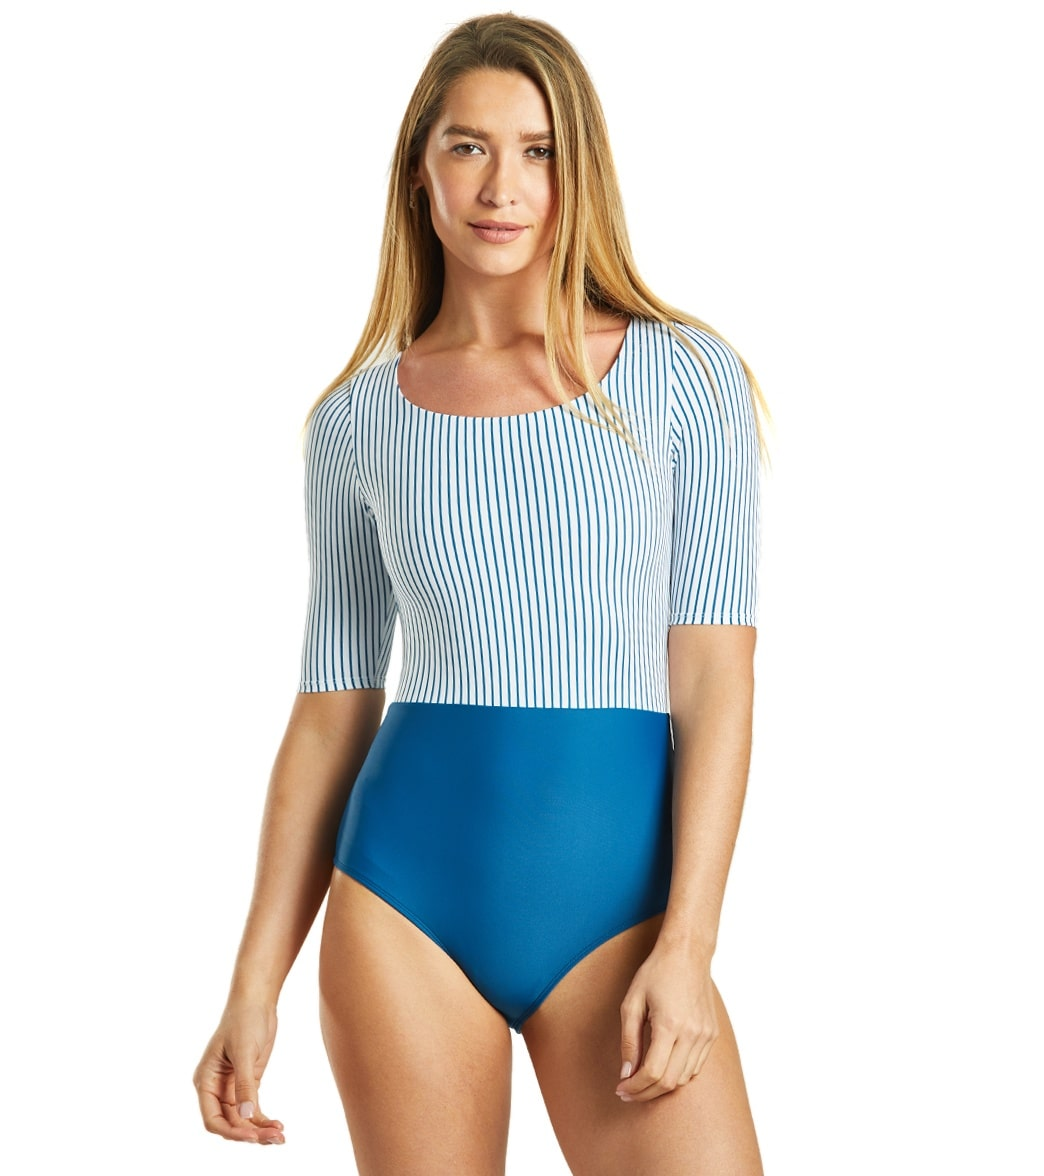 Body Glove Active Simply Me Kat Short Sleeve One Piece Swimsuit